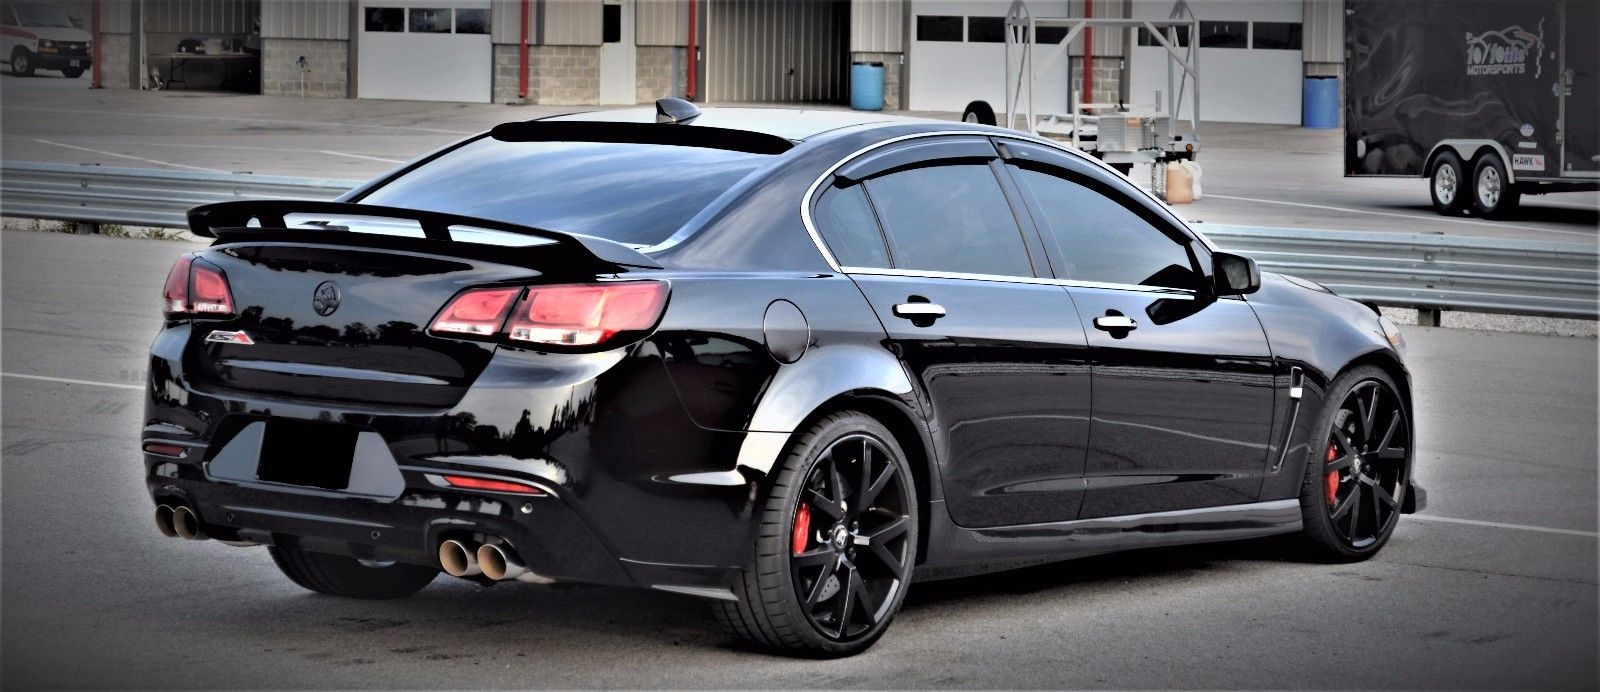 throtl - 2015 Chevrolet SS Sedan 6M Full Holden Conversion